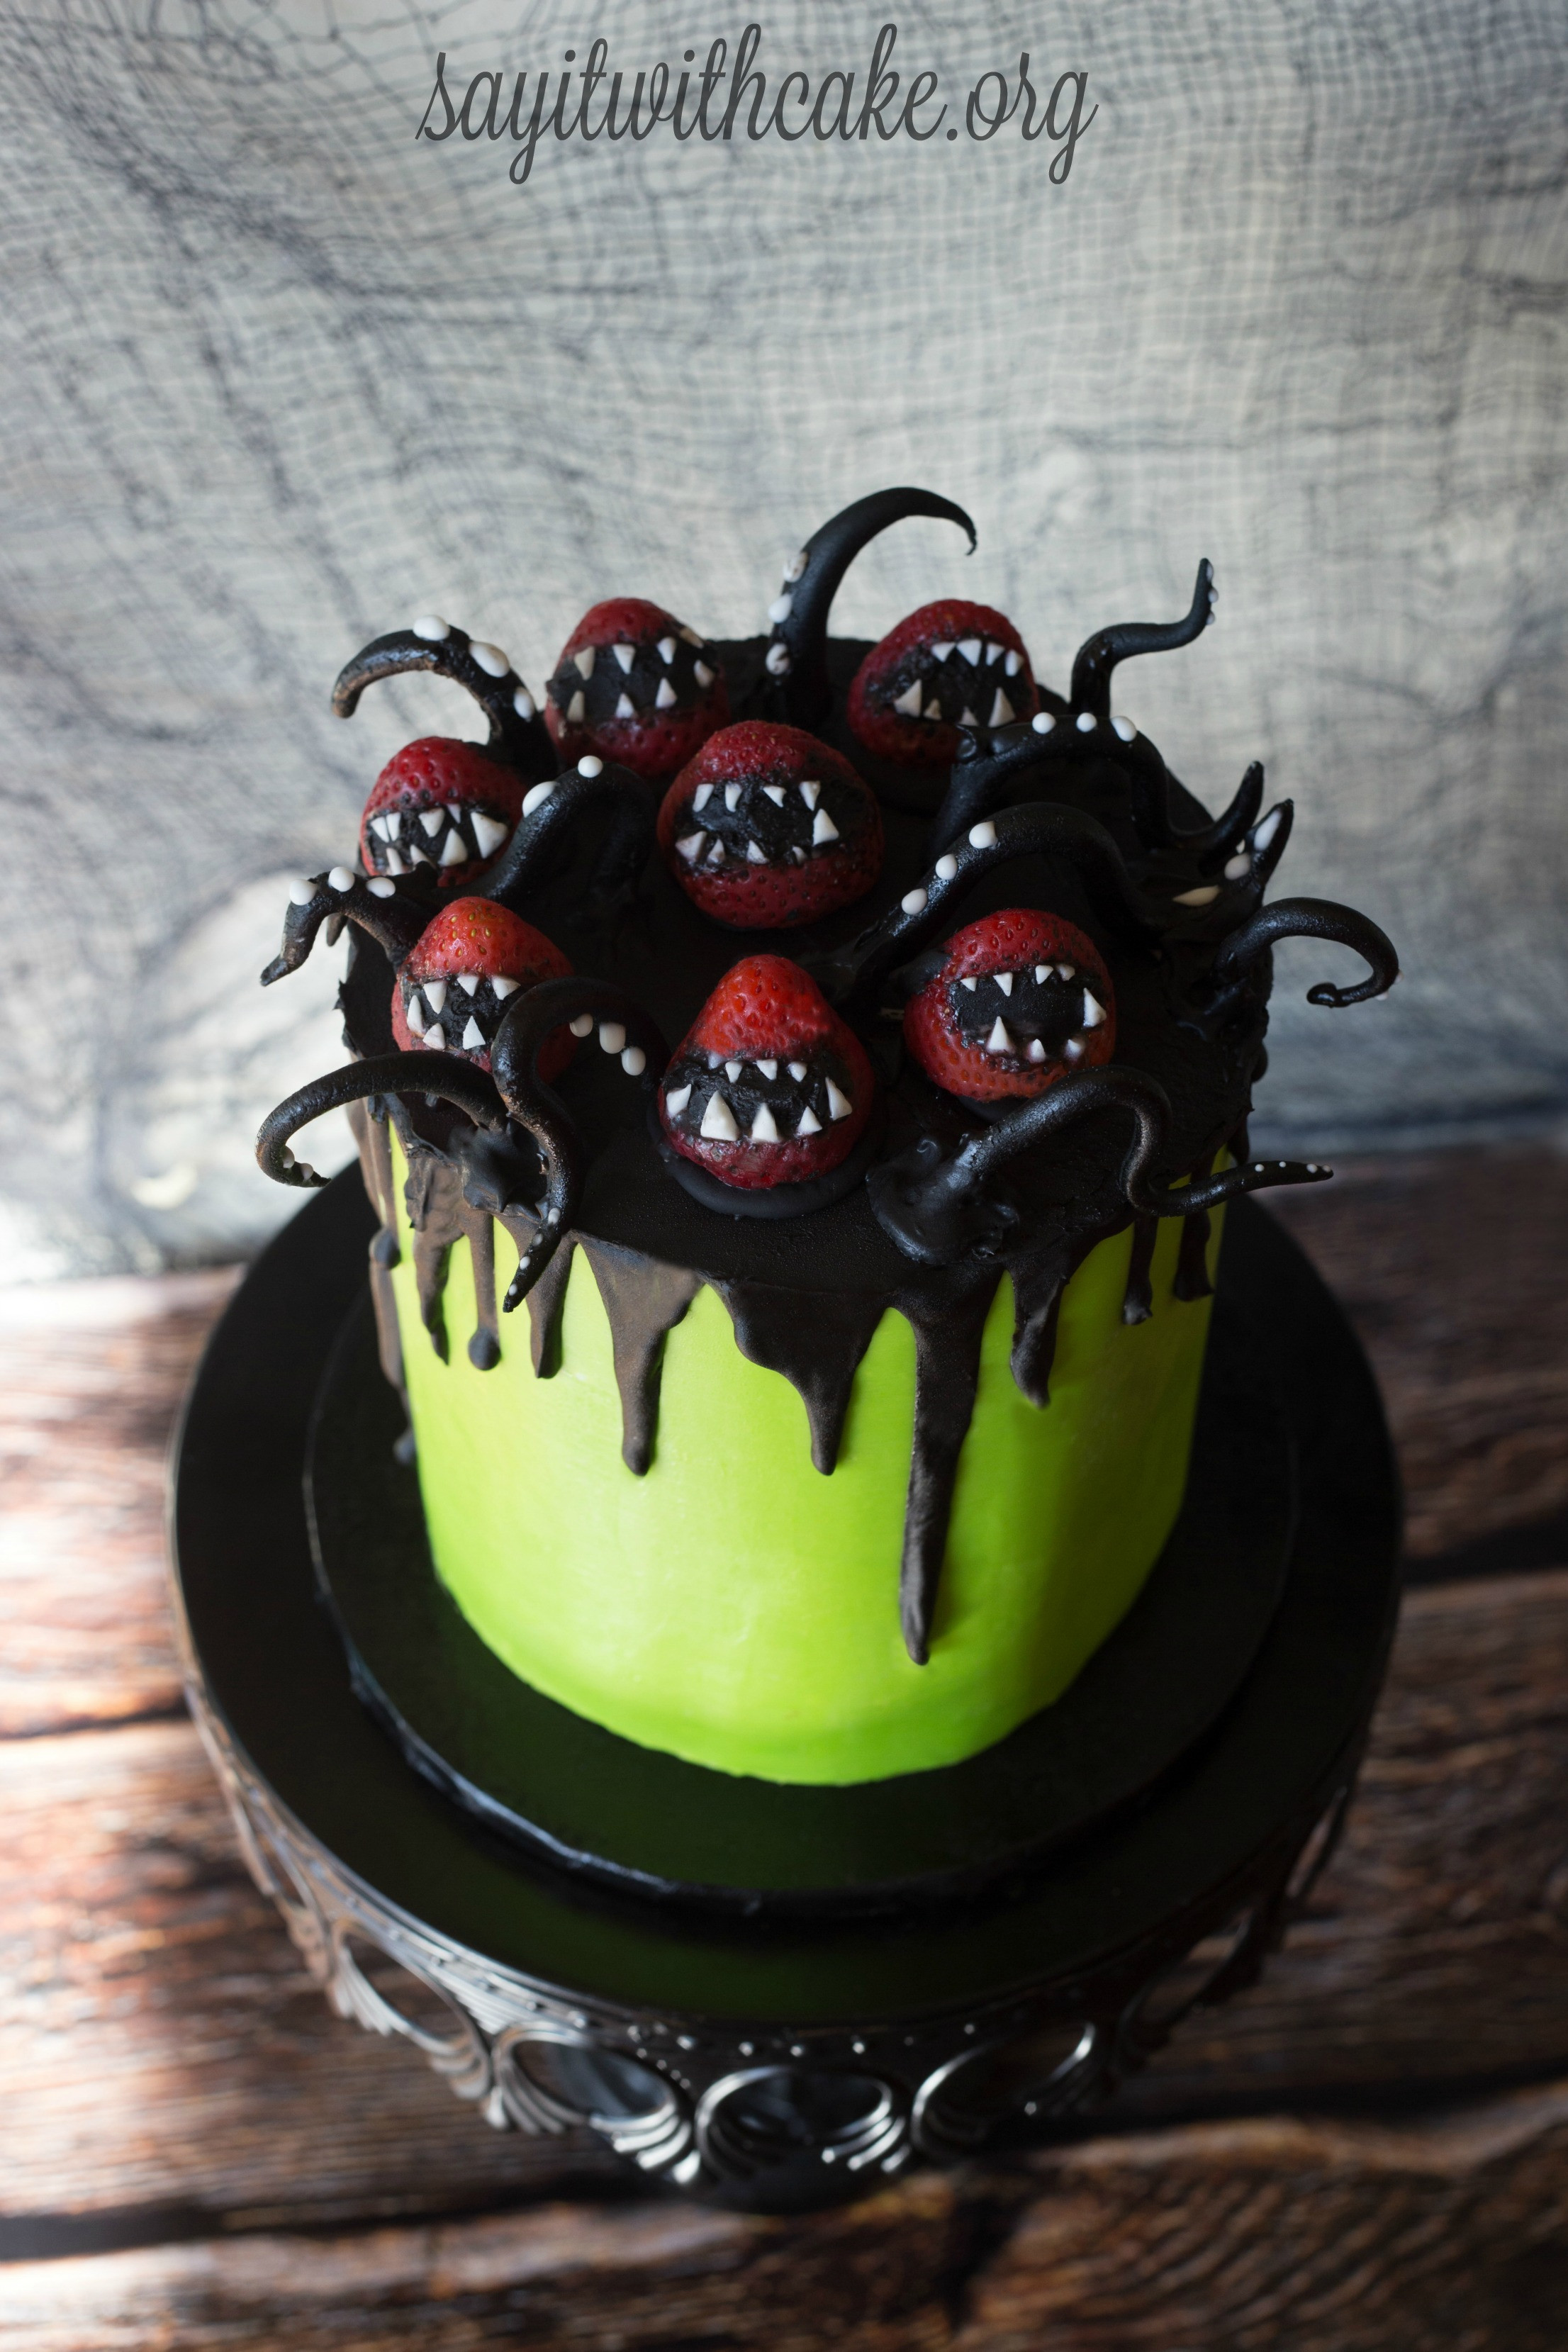 Spooky Halloween Cakes  Creepy Halloween Cake – Say it With Cake